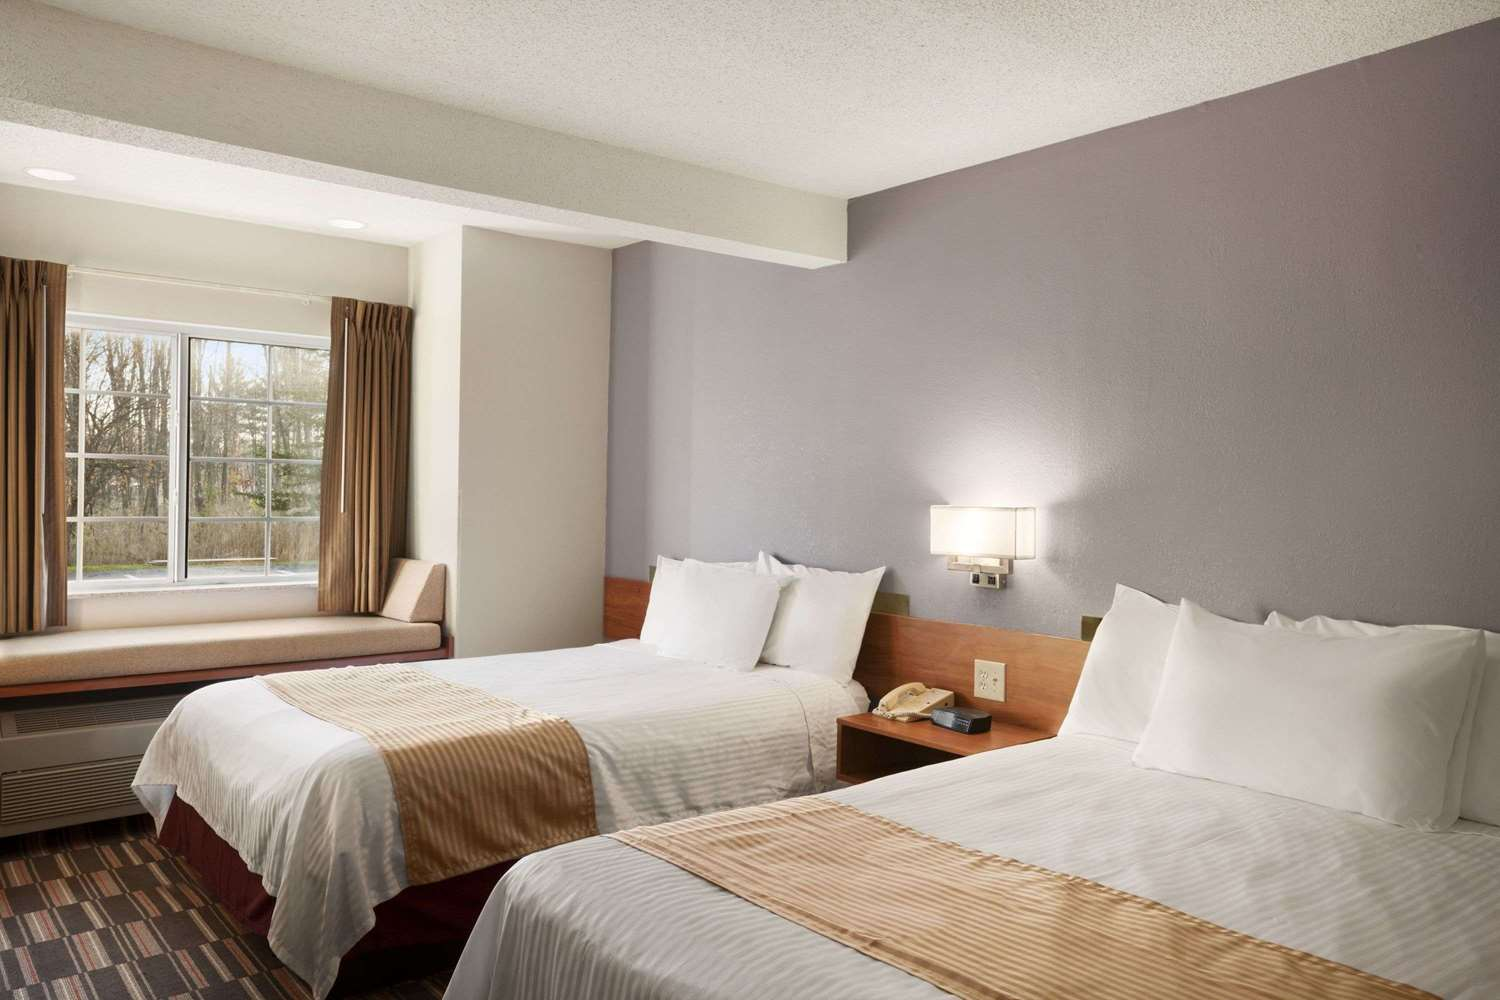 Microtel Inn By Wyndham Albany Airport Latham Ny See